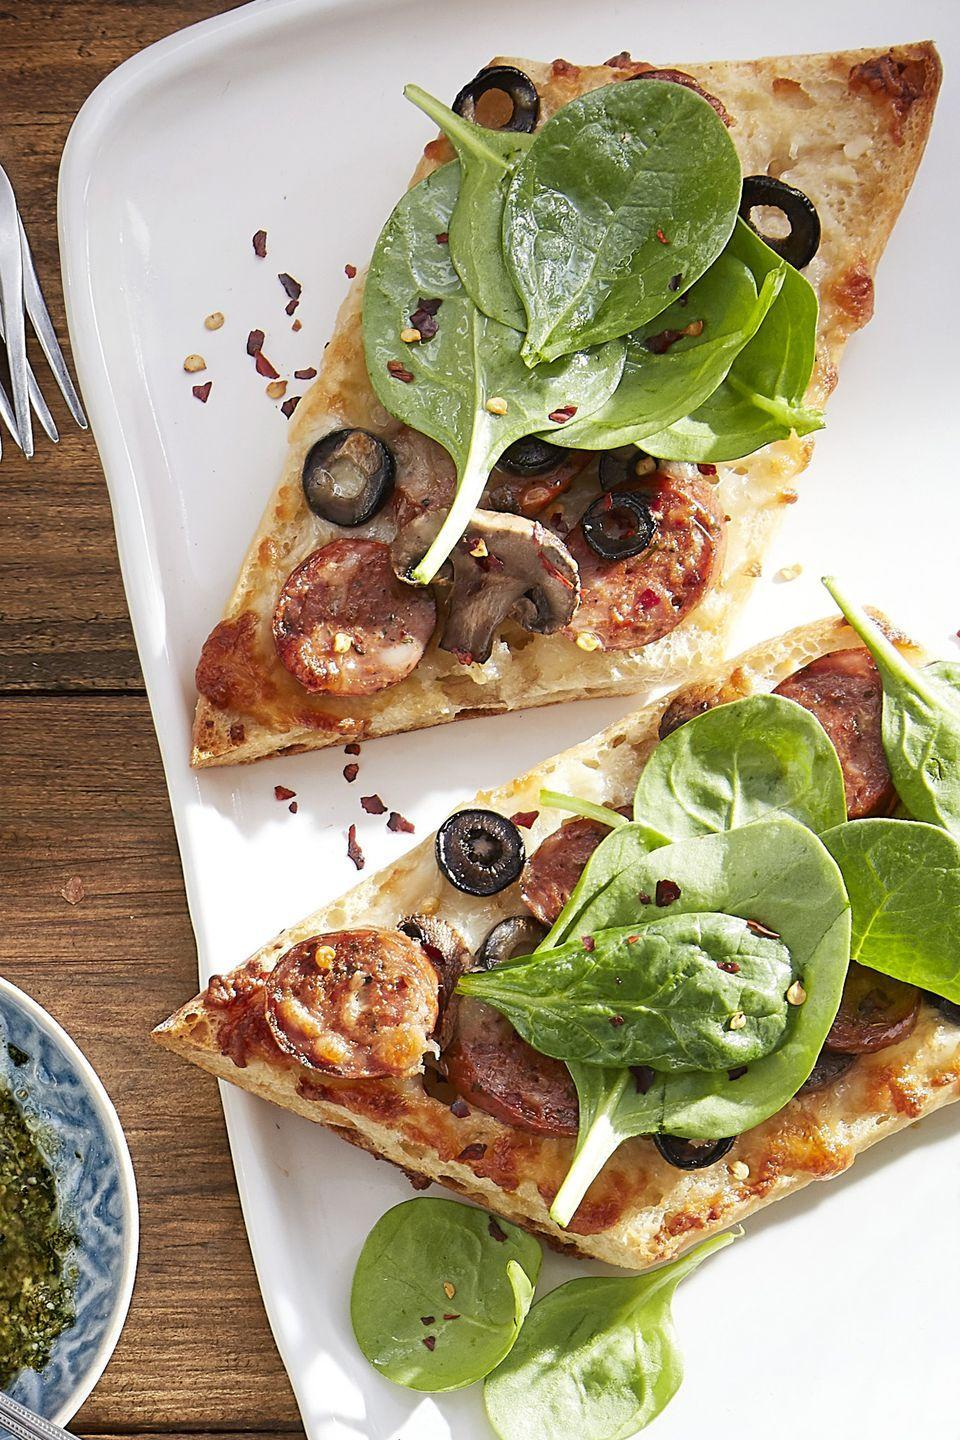 "<p>Chicken sausage, olives, and spinach are about to become your new favorite pizza toppings.</p><p><strong><a href=""https://www.countryliving.com/food-drinks/recipes/a44232/sausage-mushroom-black-olive-white-pizzas-recipe/"" rel=""nofollow noopener"" target=""_blank"" data-ylk=""slk:Get the recipe."" class=""link rapid-noclick-resp"">Get the recipe.</a></strong> </p>"